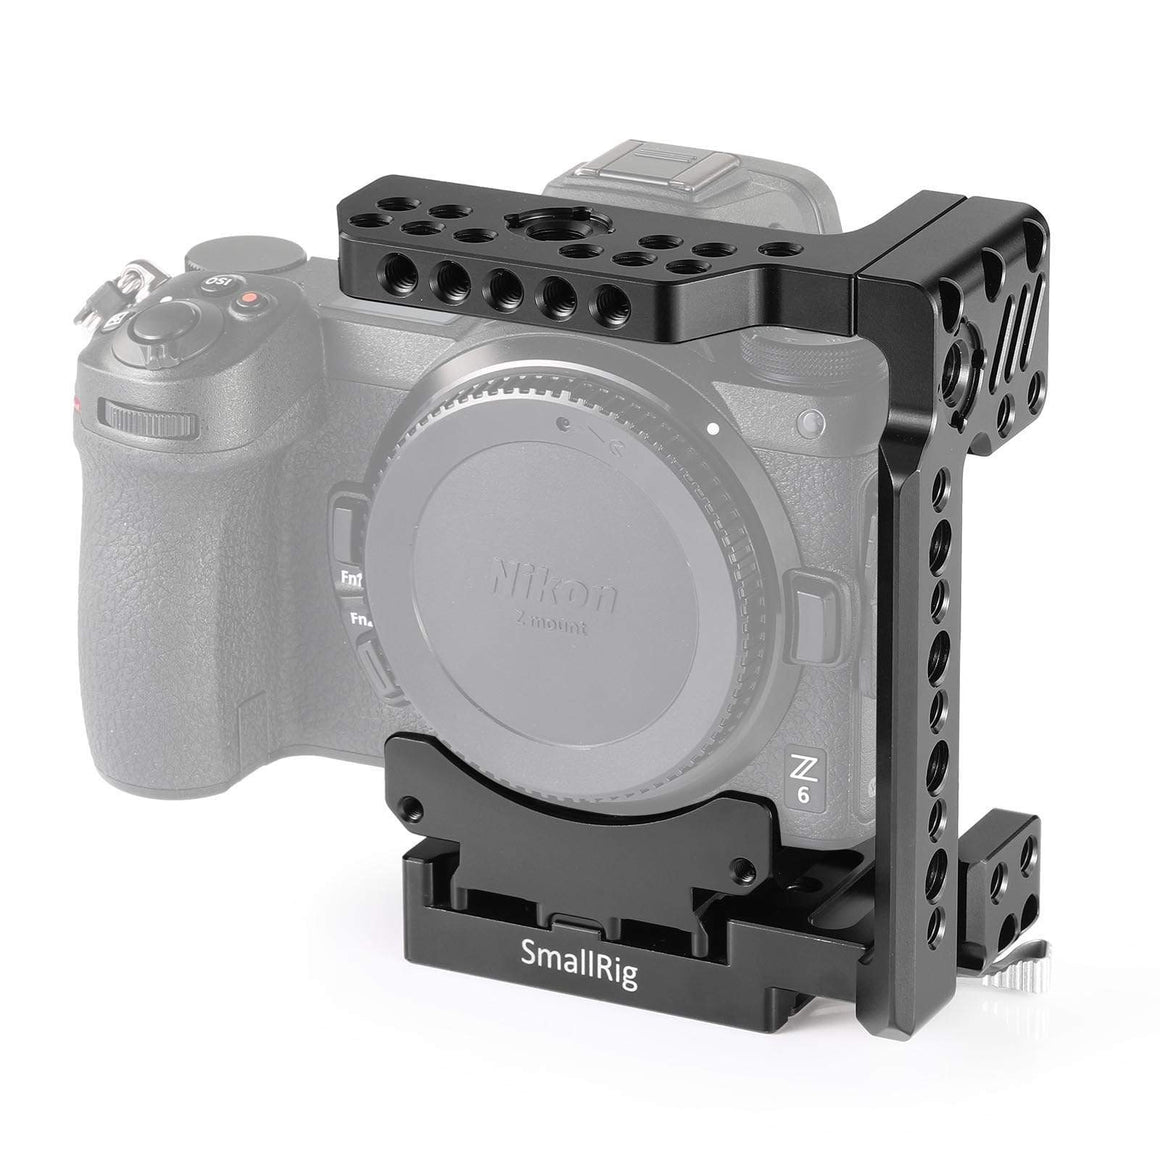 SmallRig Quick Release Half Cage for Nikon Z6 and Nikon Z7 2262